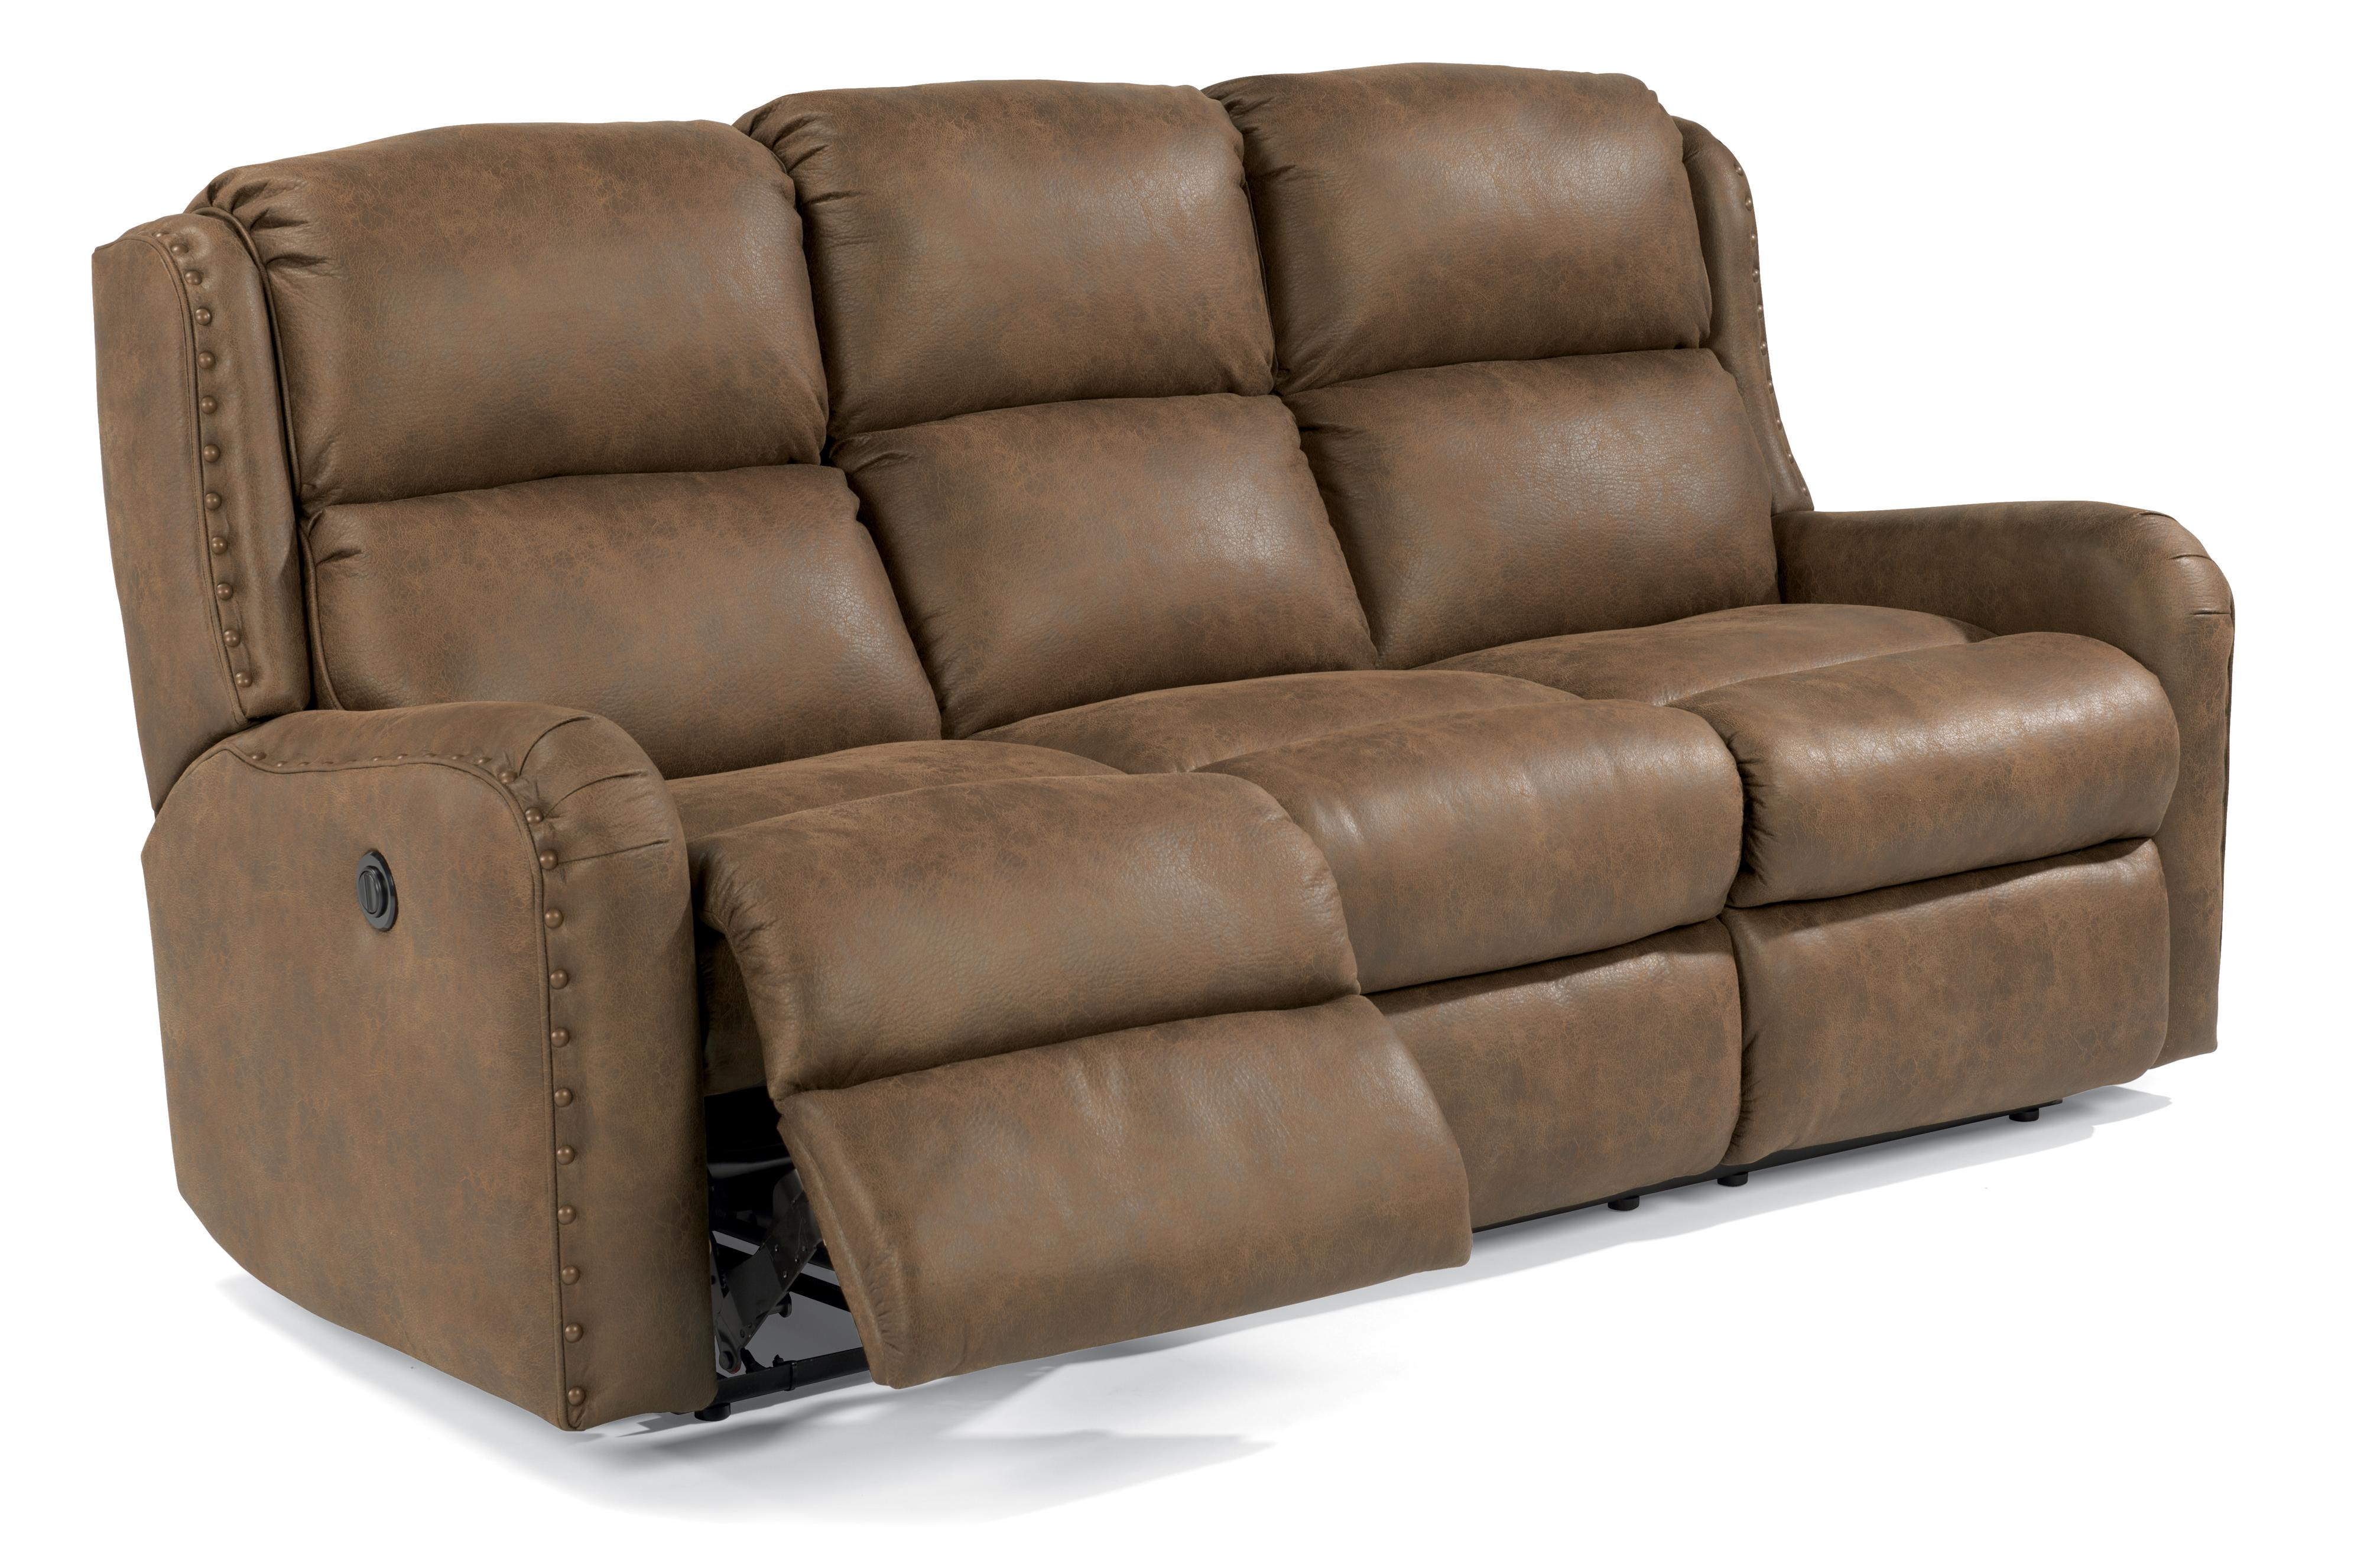 Flexsteel cameron rustic power reclining sofa with for Oversized reclining sectional sofa